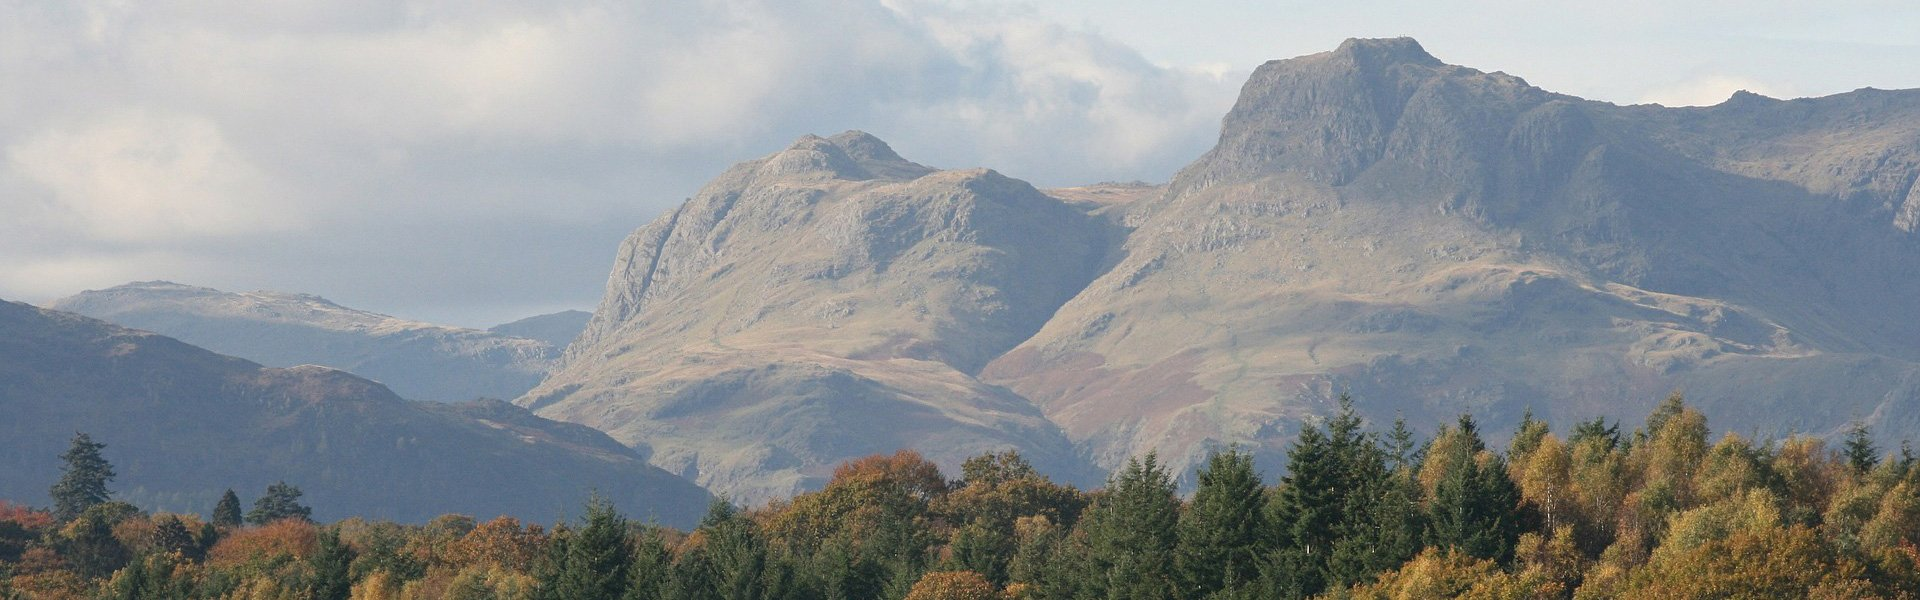 Cumbria Mountains